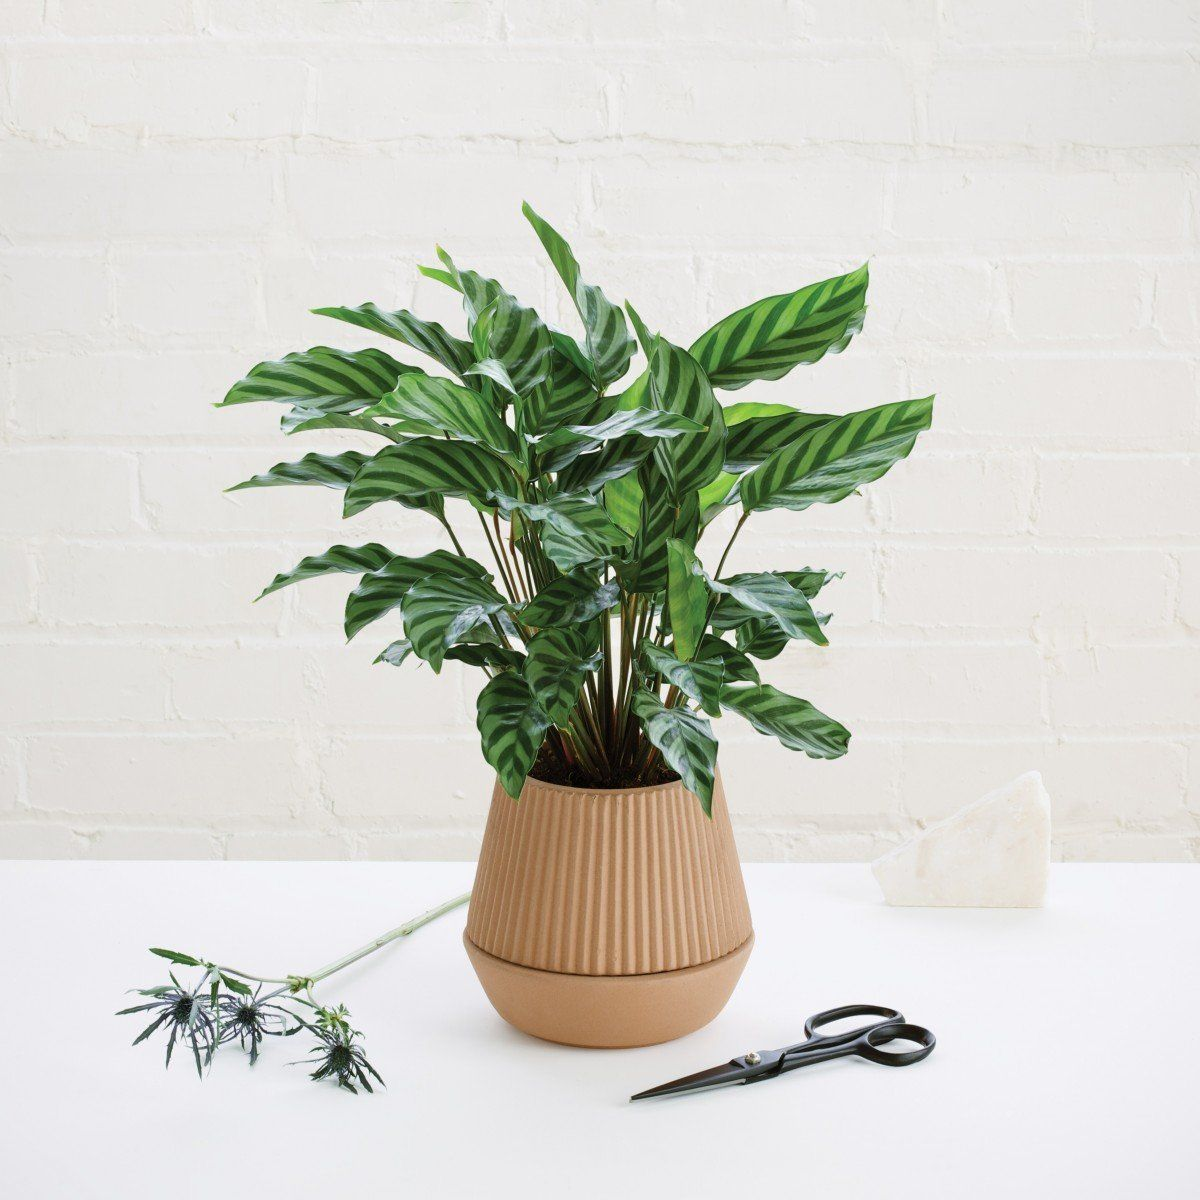 Pleated Earthenware Planter by Umbra Shift #selfwatering